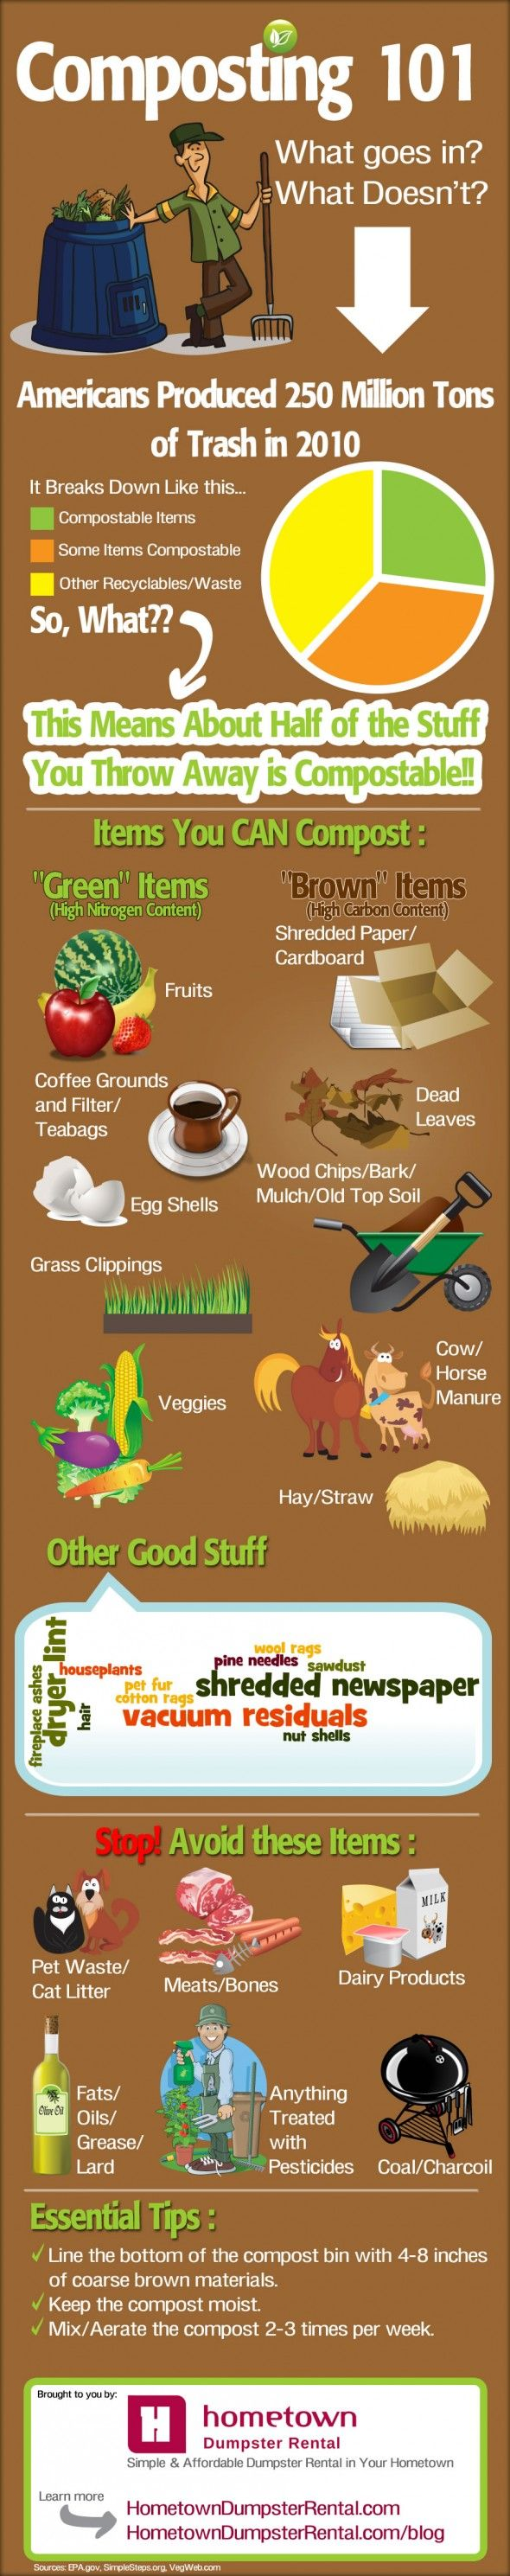 infographic composting 101 what u0027s in what u0027s out great